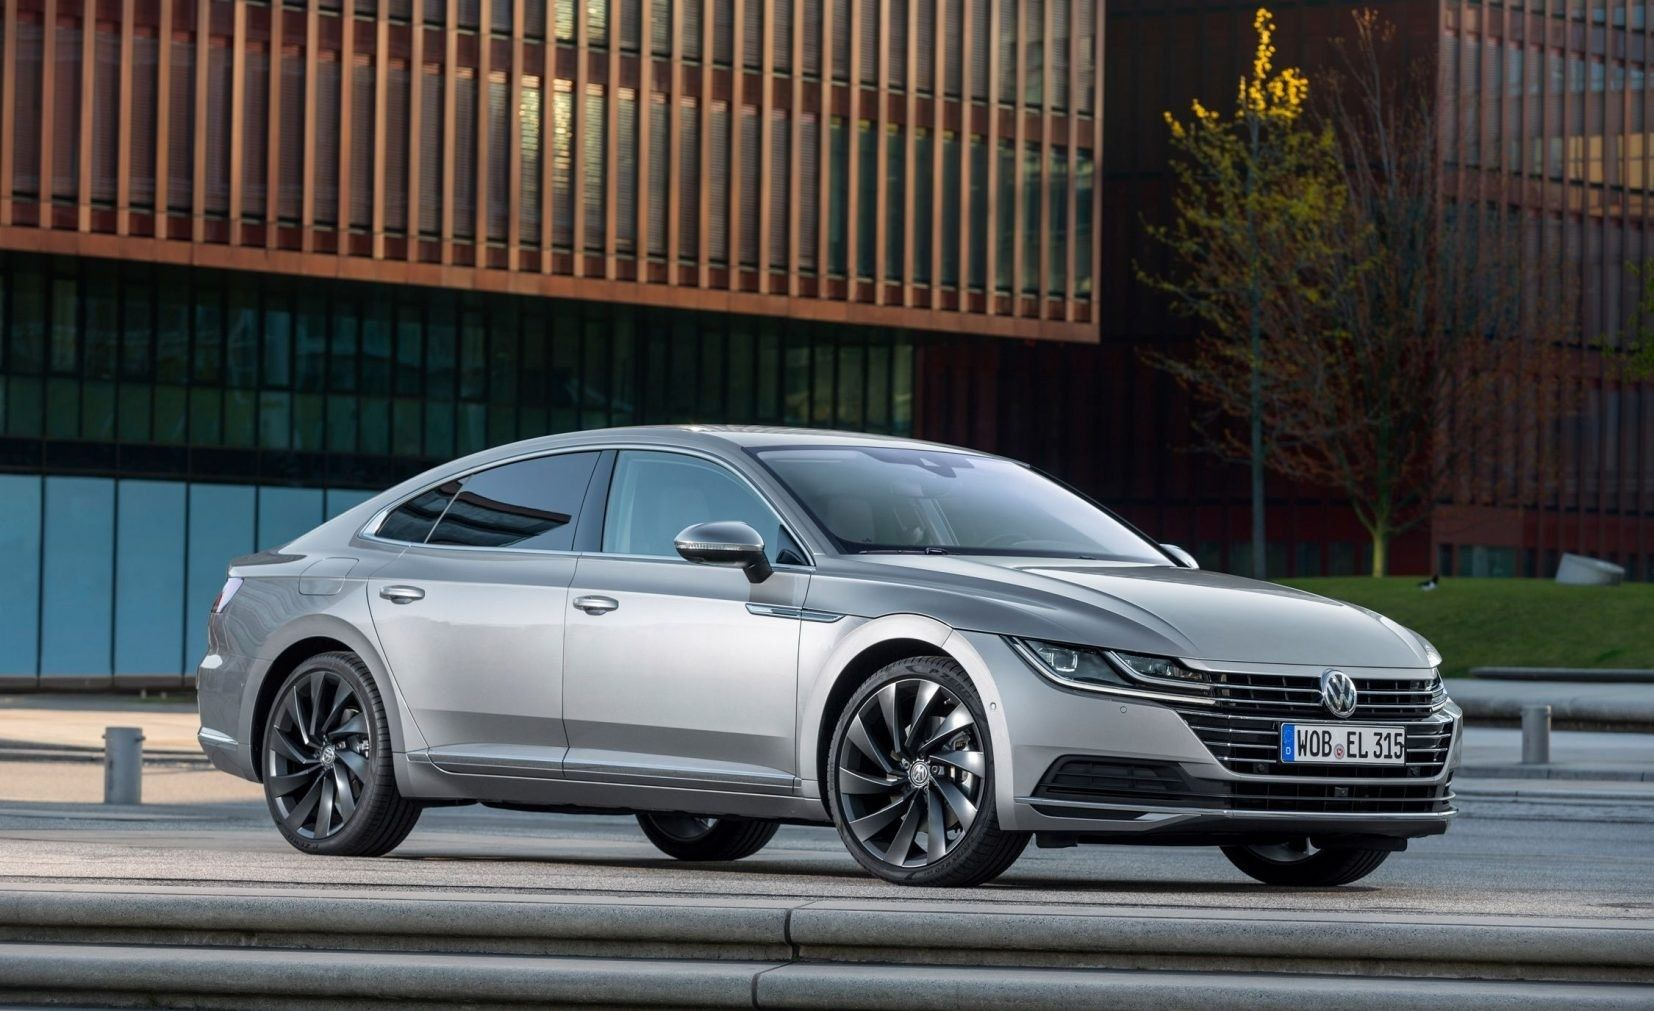 84 Gallery of 2019 Vw Cc Picture with 2019 Vw Cc